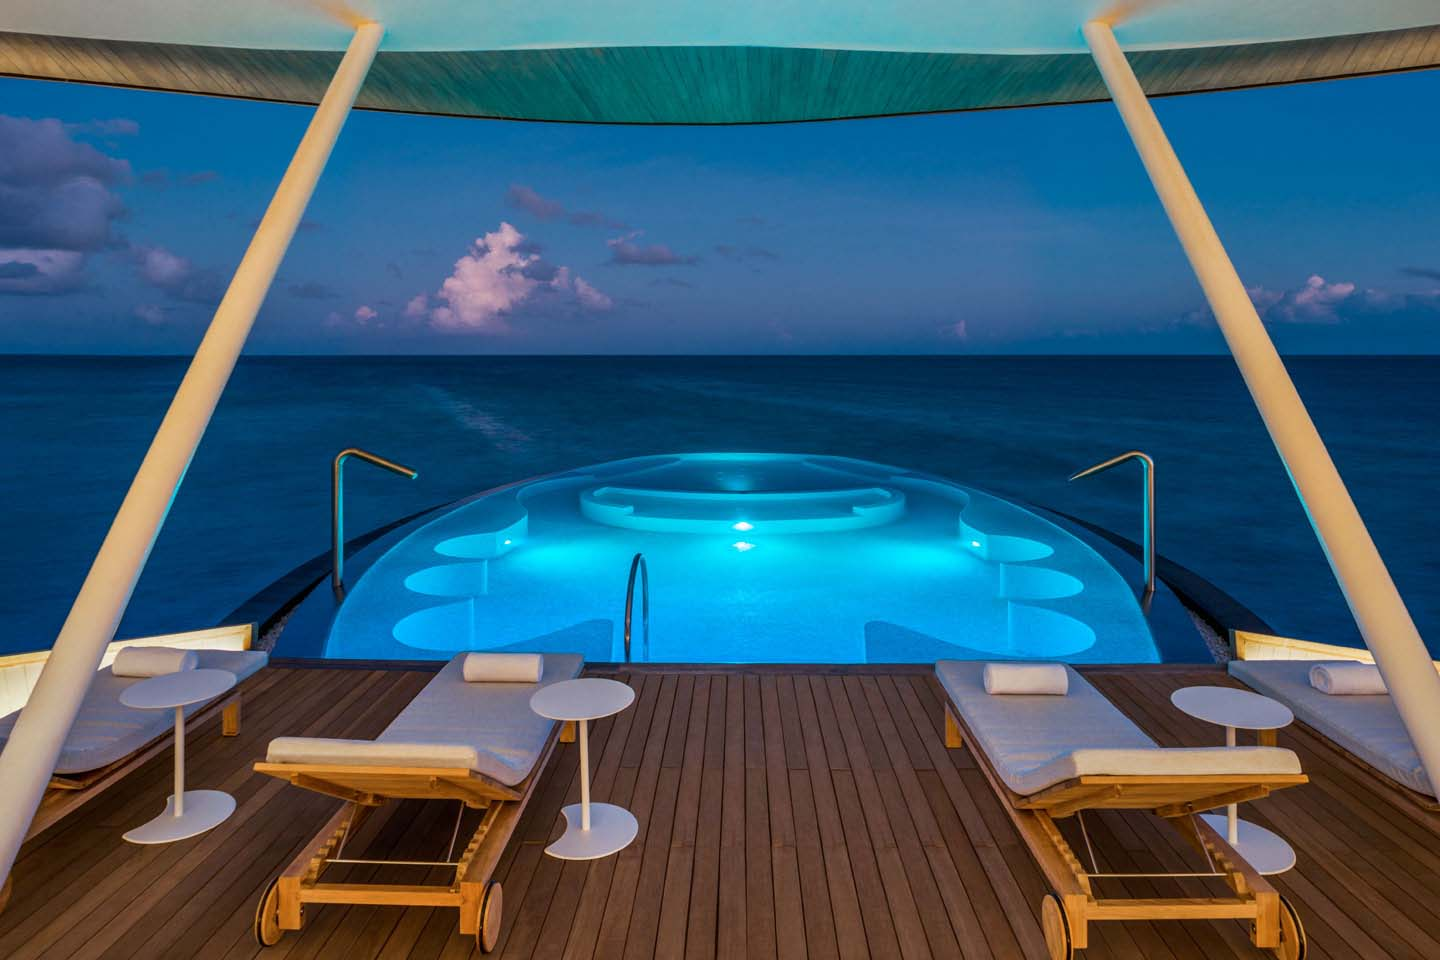 St. Regis Hotel Maldives, Pool